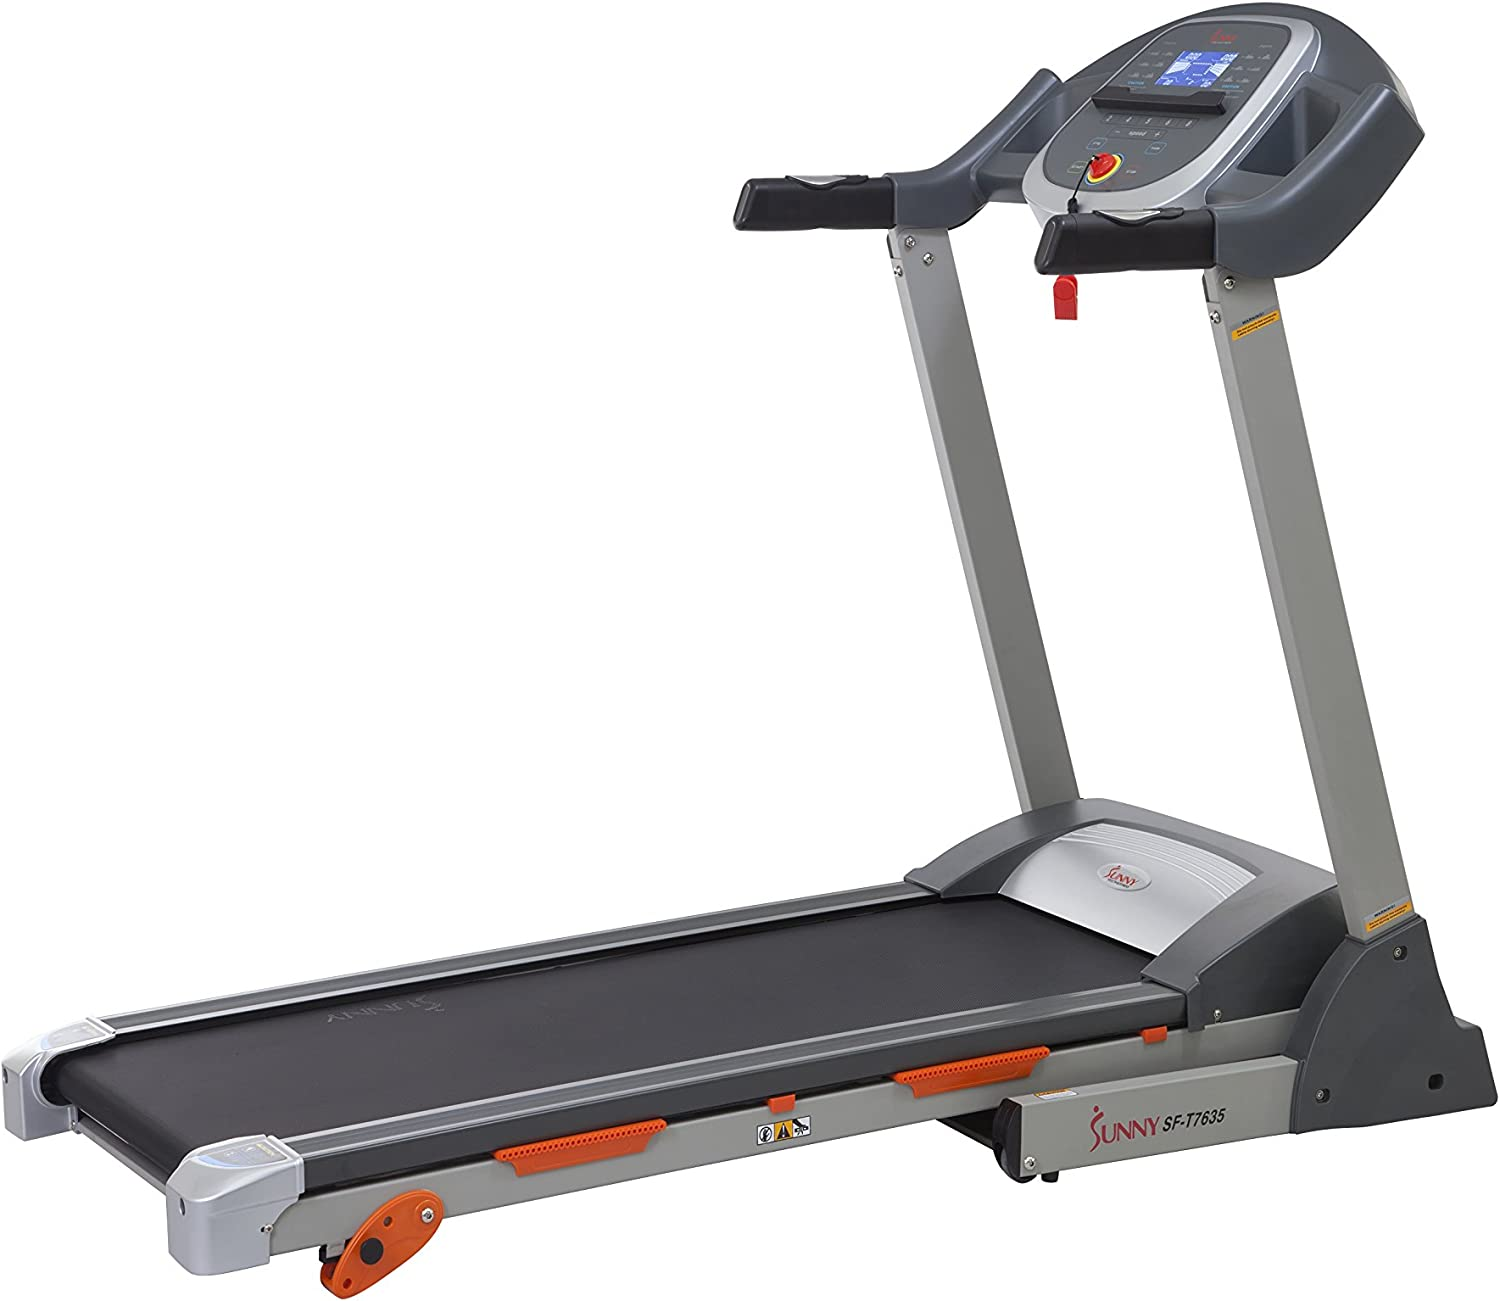 Sunny Health & Fitness Sf-t7635 Tapis de Course avec l'Inclinaison, Pulse Grips, écran LCD